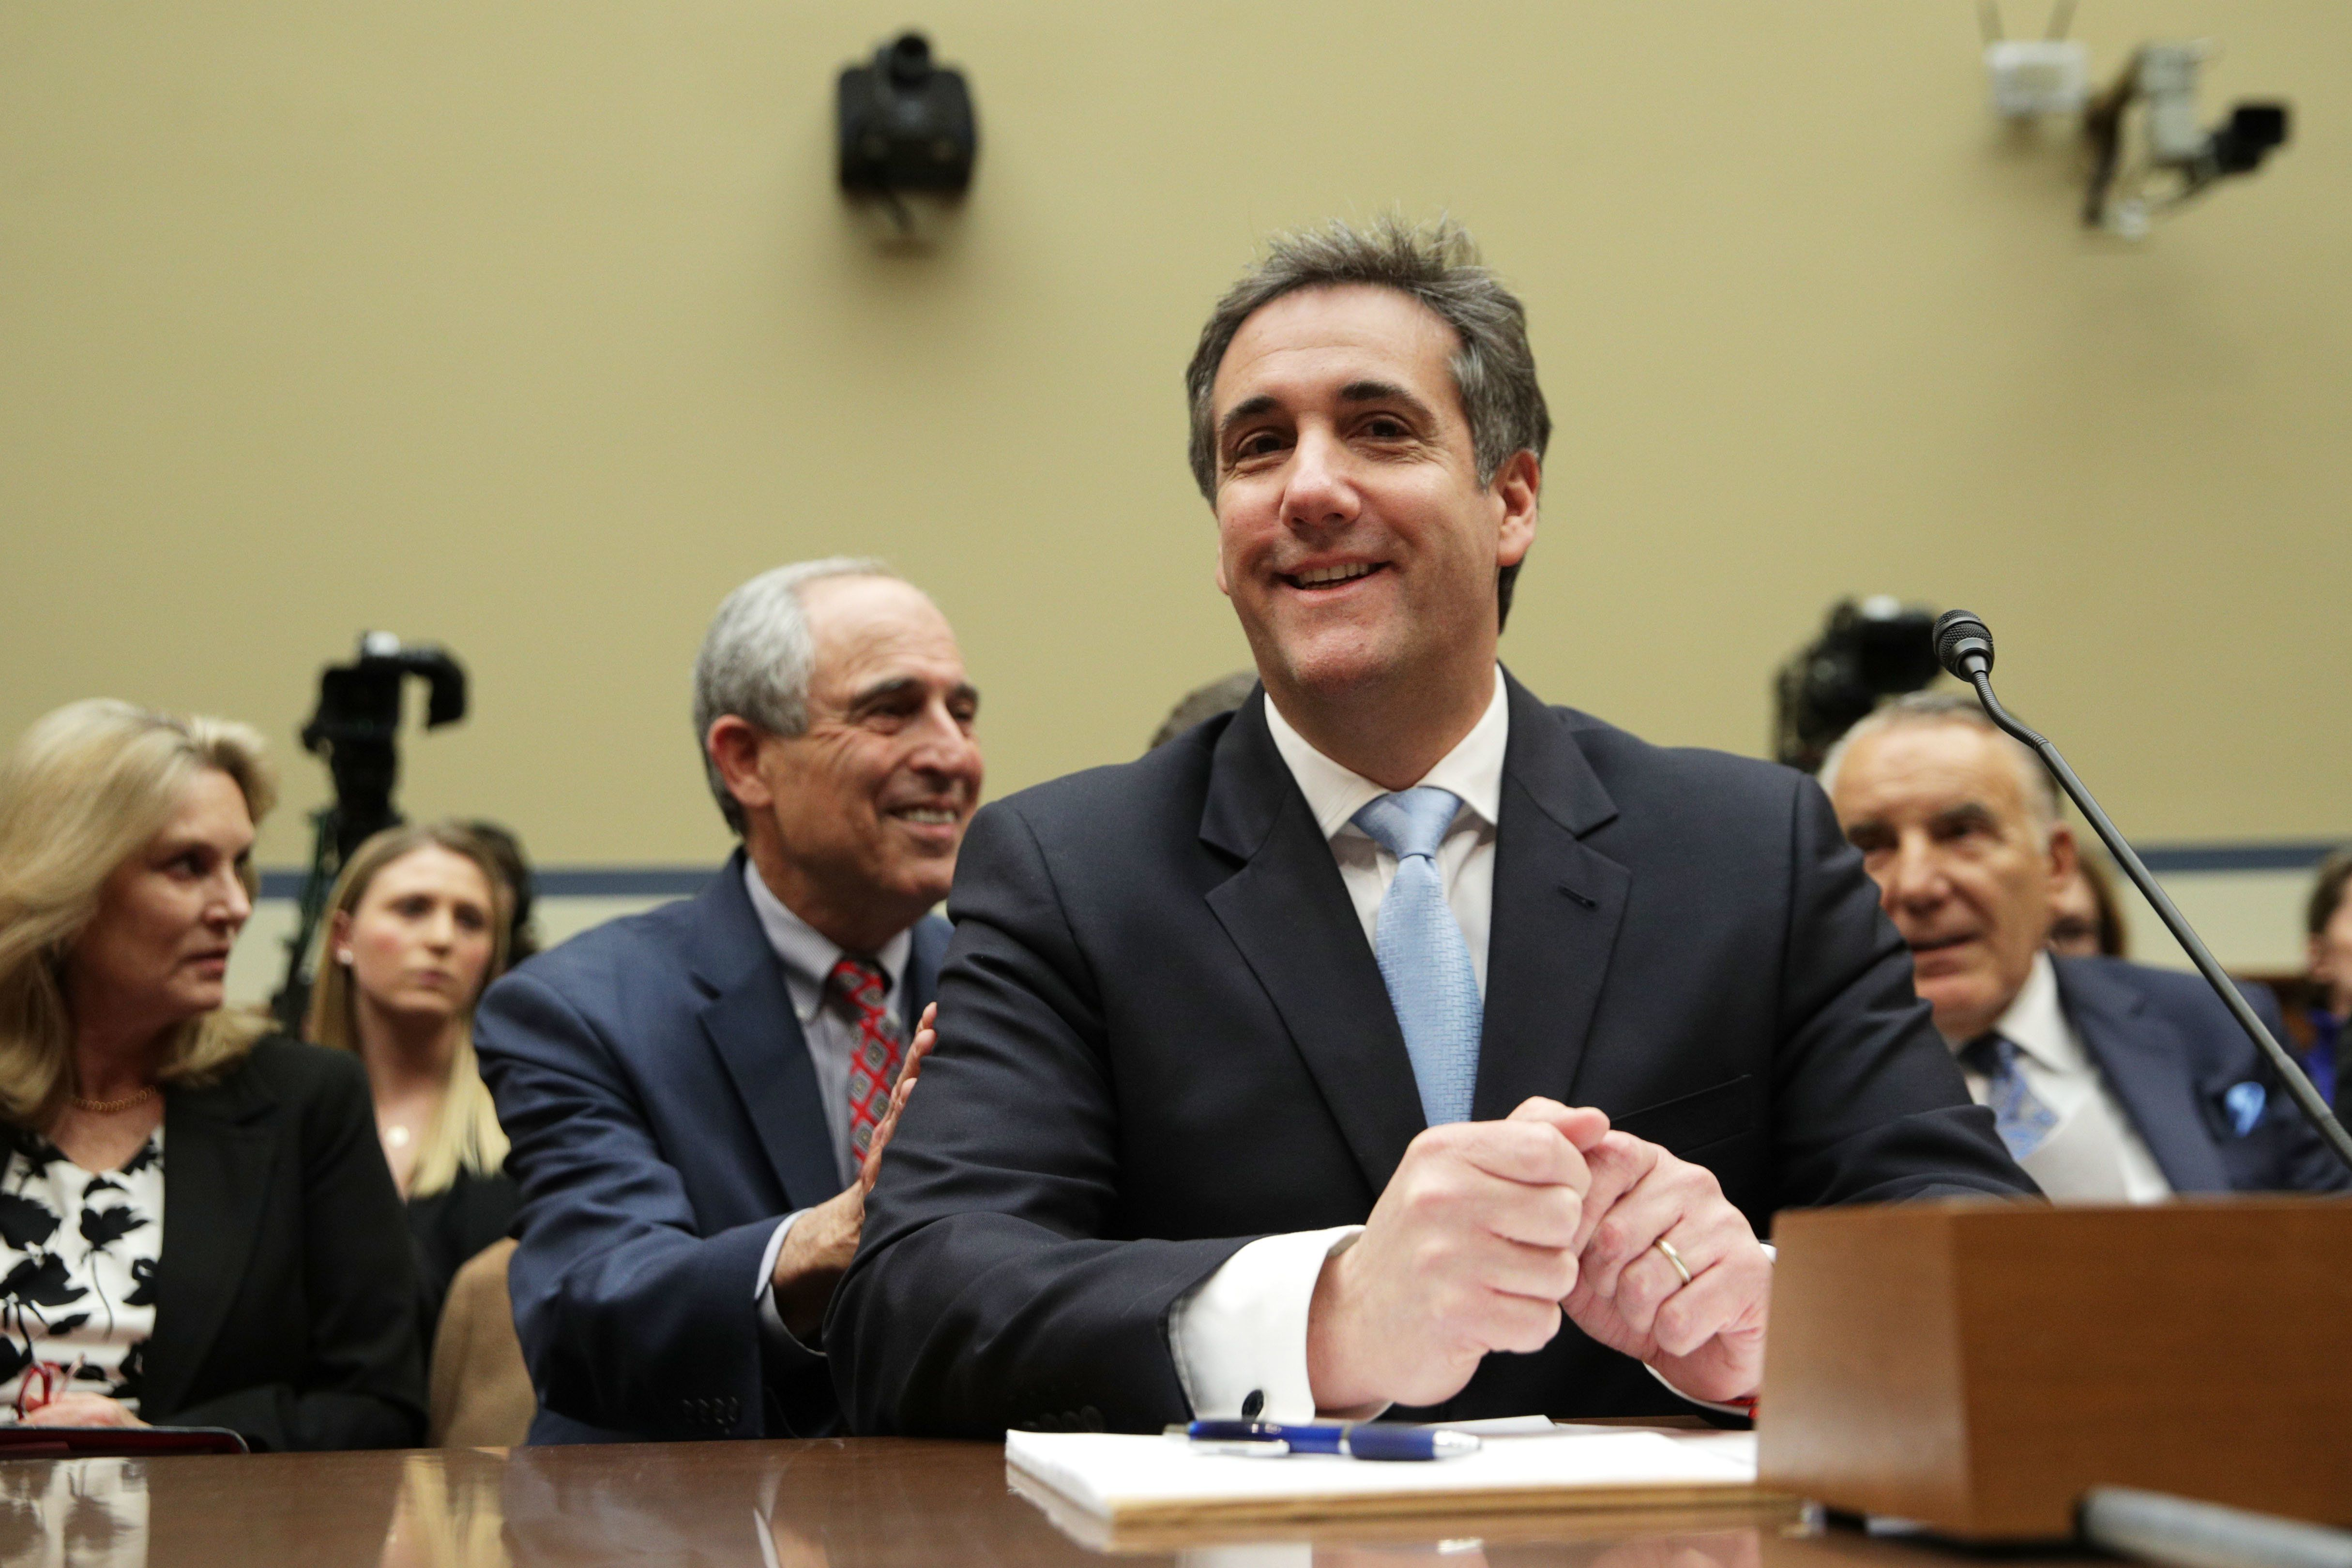 WASHINGTON, DC - FEBRUARY 27:  Michael Cohen, former attorney and fixer for President Donald Trump, shares a moment with his lawyer Lanny Davis as he testifies before the House Oversight Committee on Capitol Hill February 27, 2019 in Washington, DC. Last year Cohen was sentenced to three years in prison and ordered to pay a $50,000 fine for tax evasion, making false statements to a financial institution, unlawful excessive campaign contributions and lying to Congress as part of special counsel Robert Mueller's investigation into Russian meddling in the 2016 presidential elections. (Photo by Alex Wong/Getty Images)